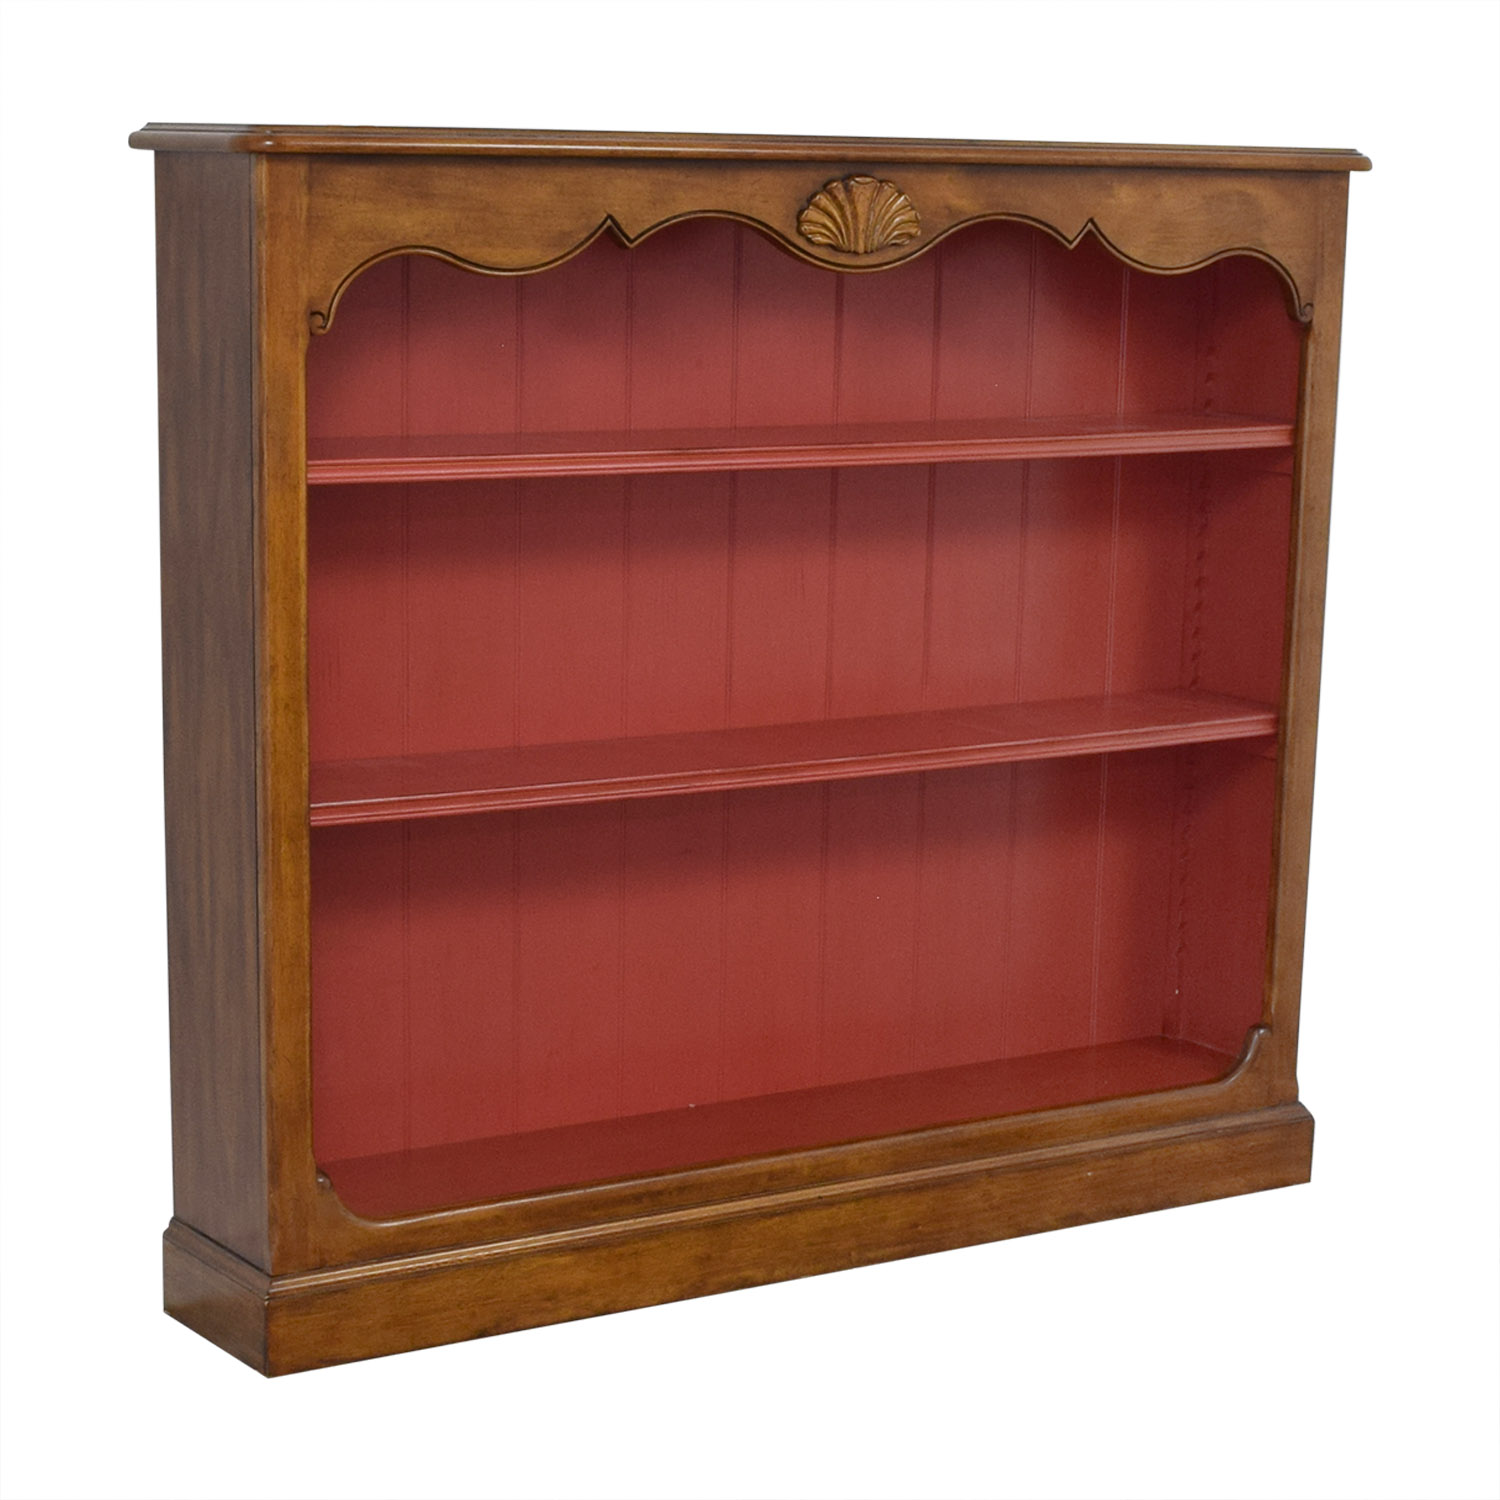 Domain Home Domain Home Bookcase second hand